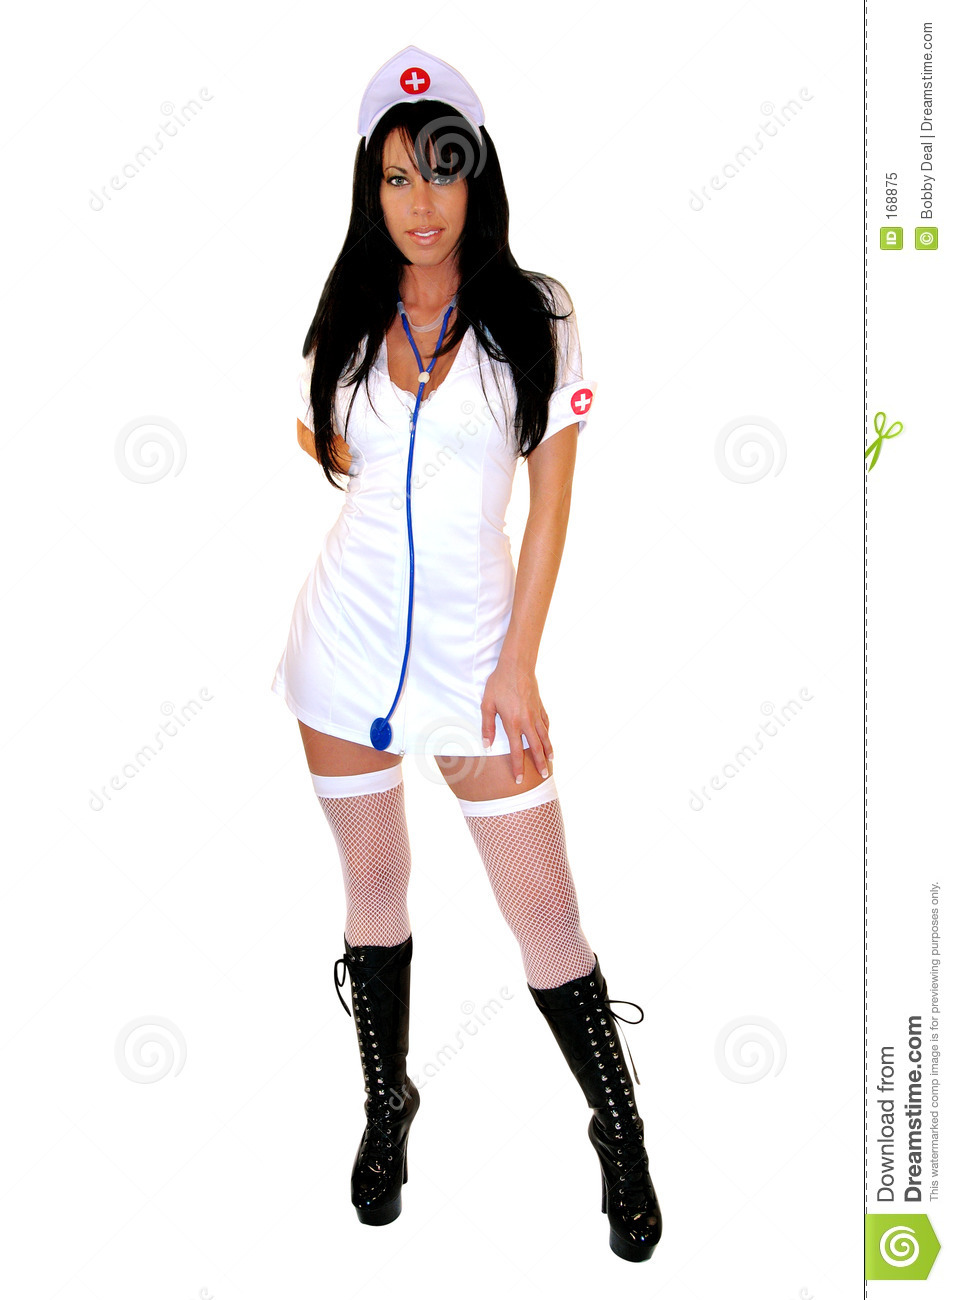 Human nurse fantasy porncraft clips